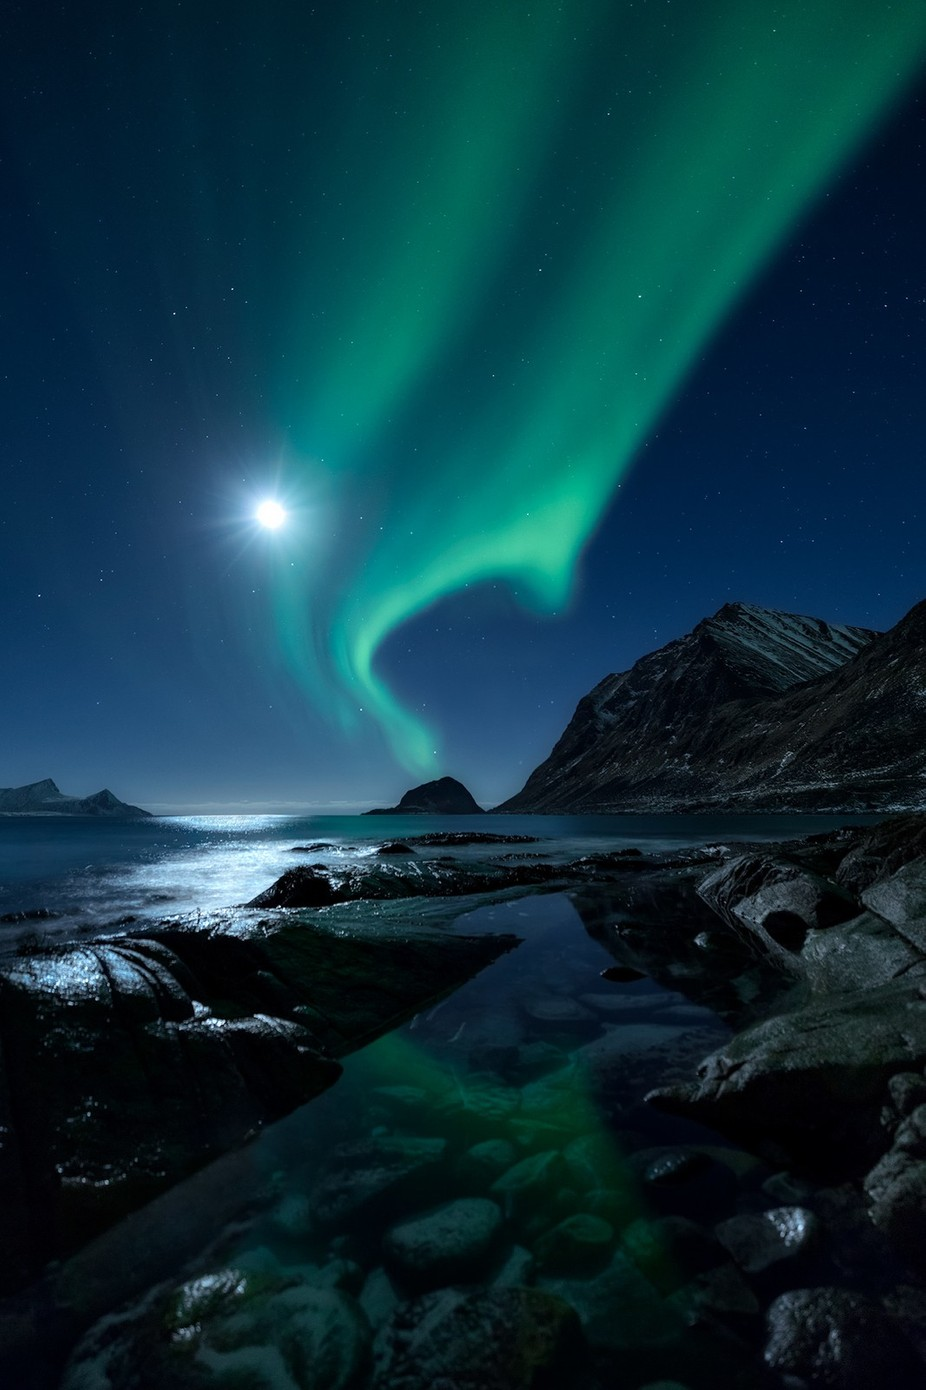 Aurorascape by Mbeiter - Night Wonders Photo Contest